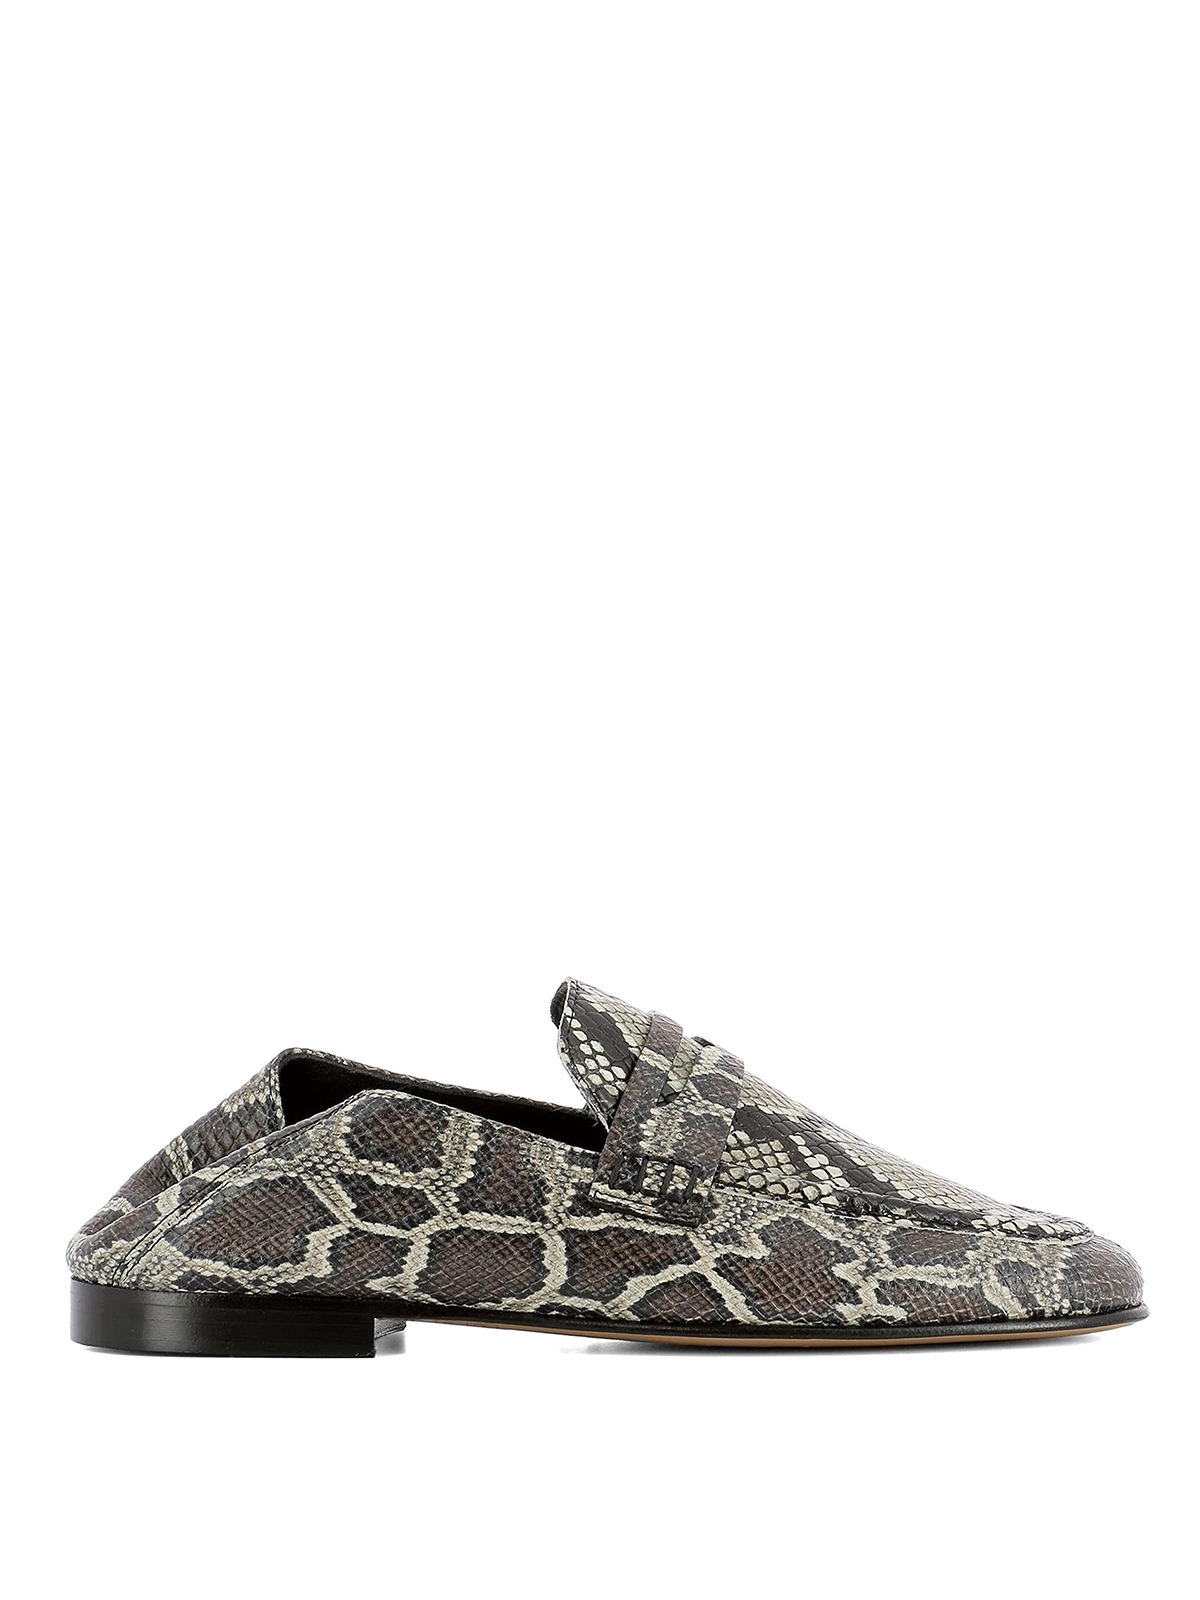 45077dff75d ISABEL MARANT  Loafers   Slippers - Fezzy python print leather loafers